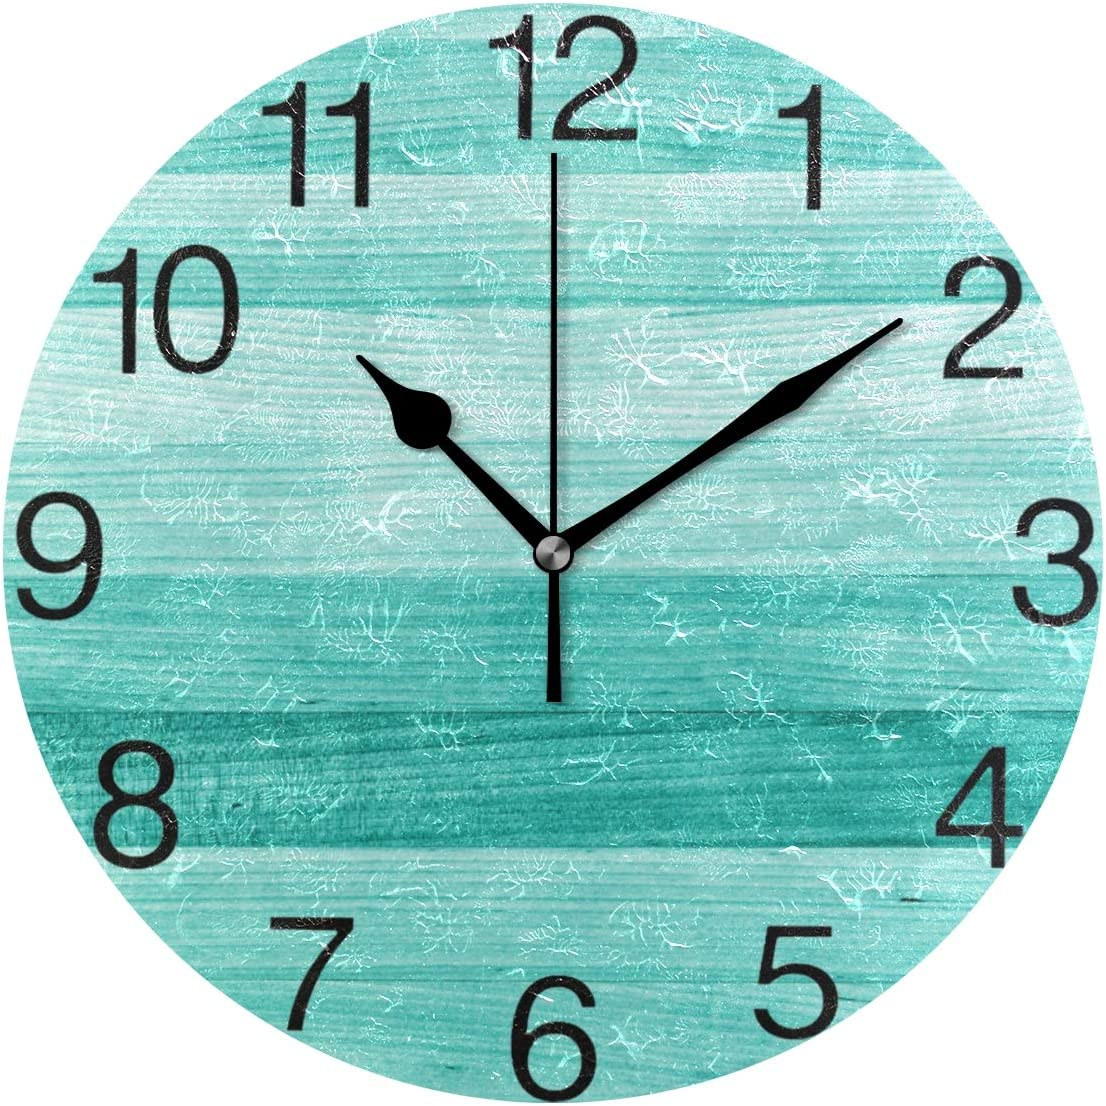 senya Teal Turquoise Green Wood Round Wall Clock, Silent Non Ticking Oil Painting Decorative for Home Office School Clock Art